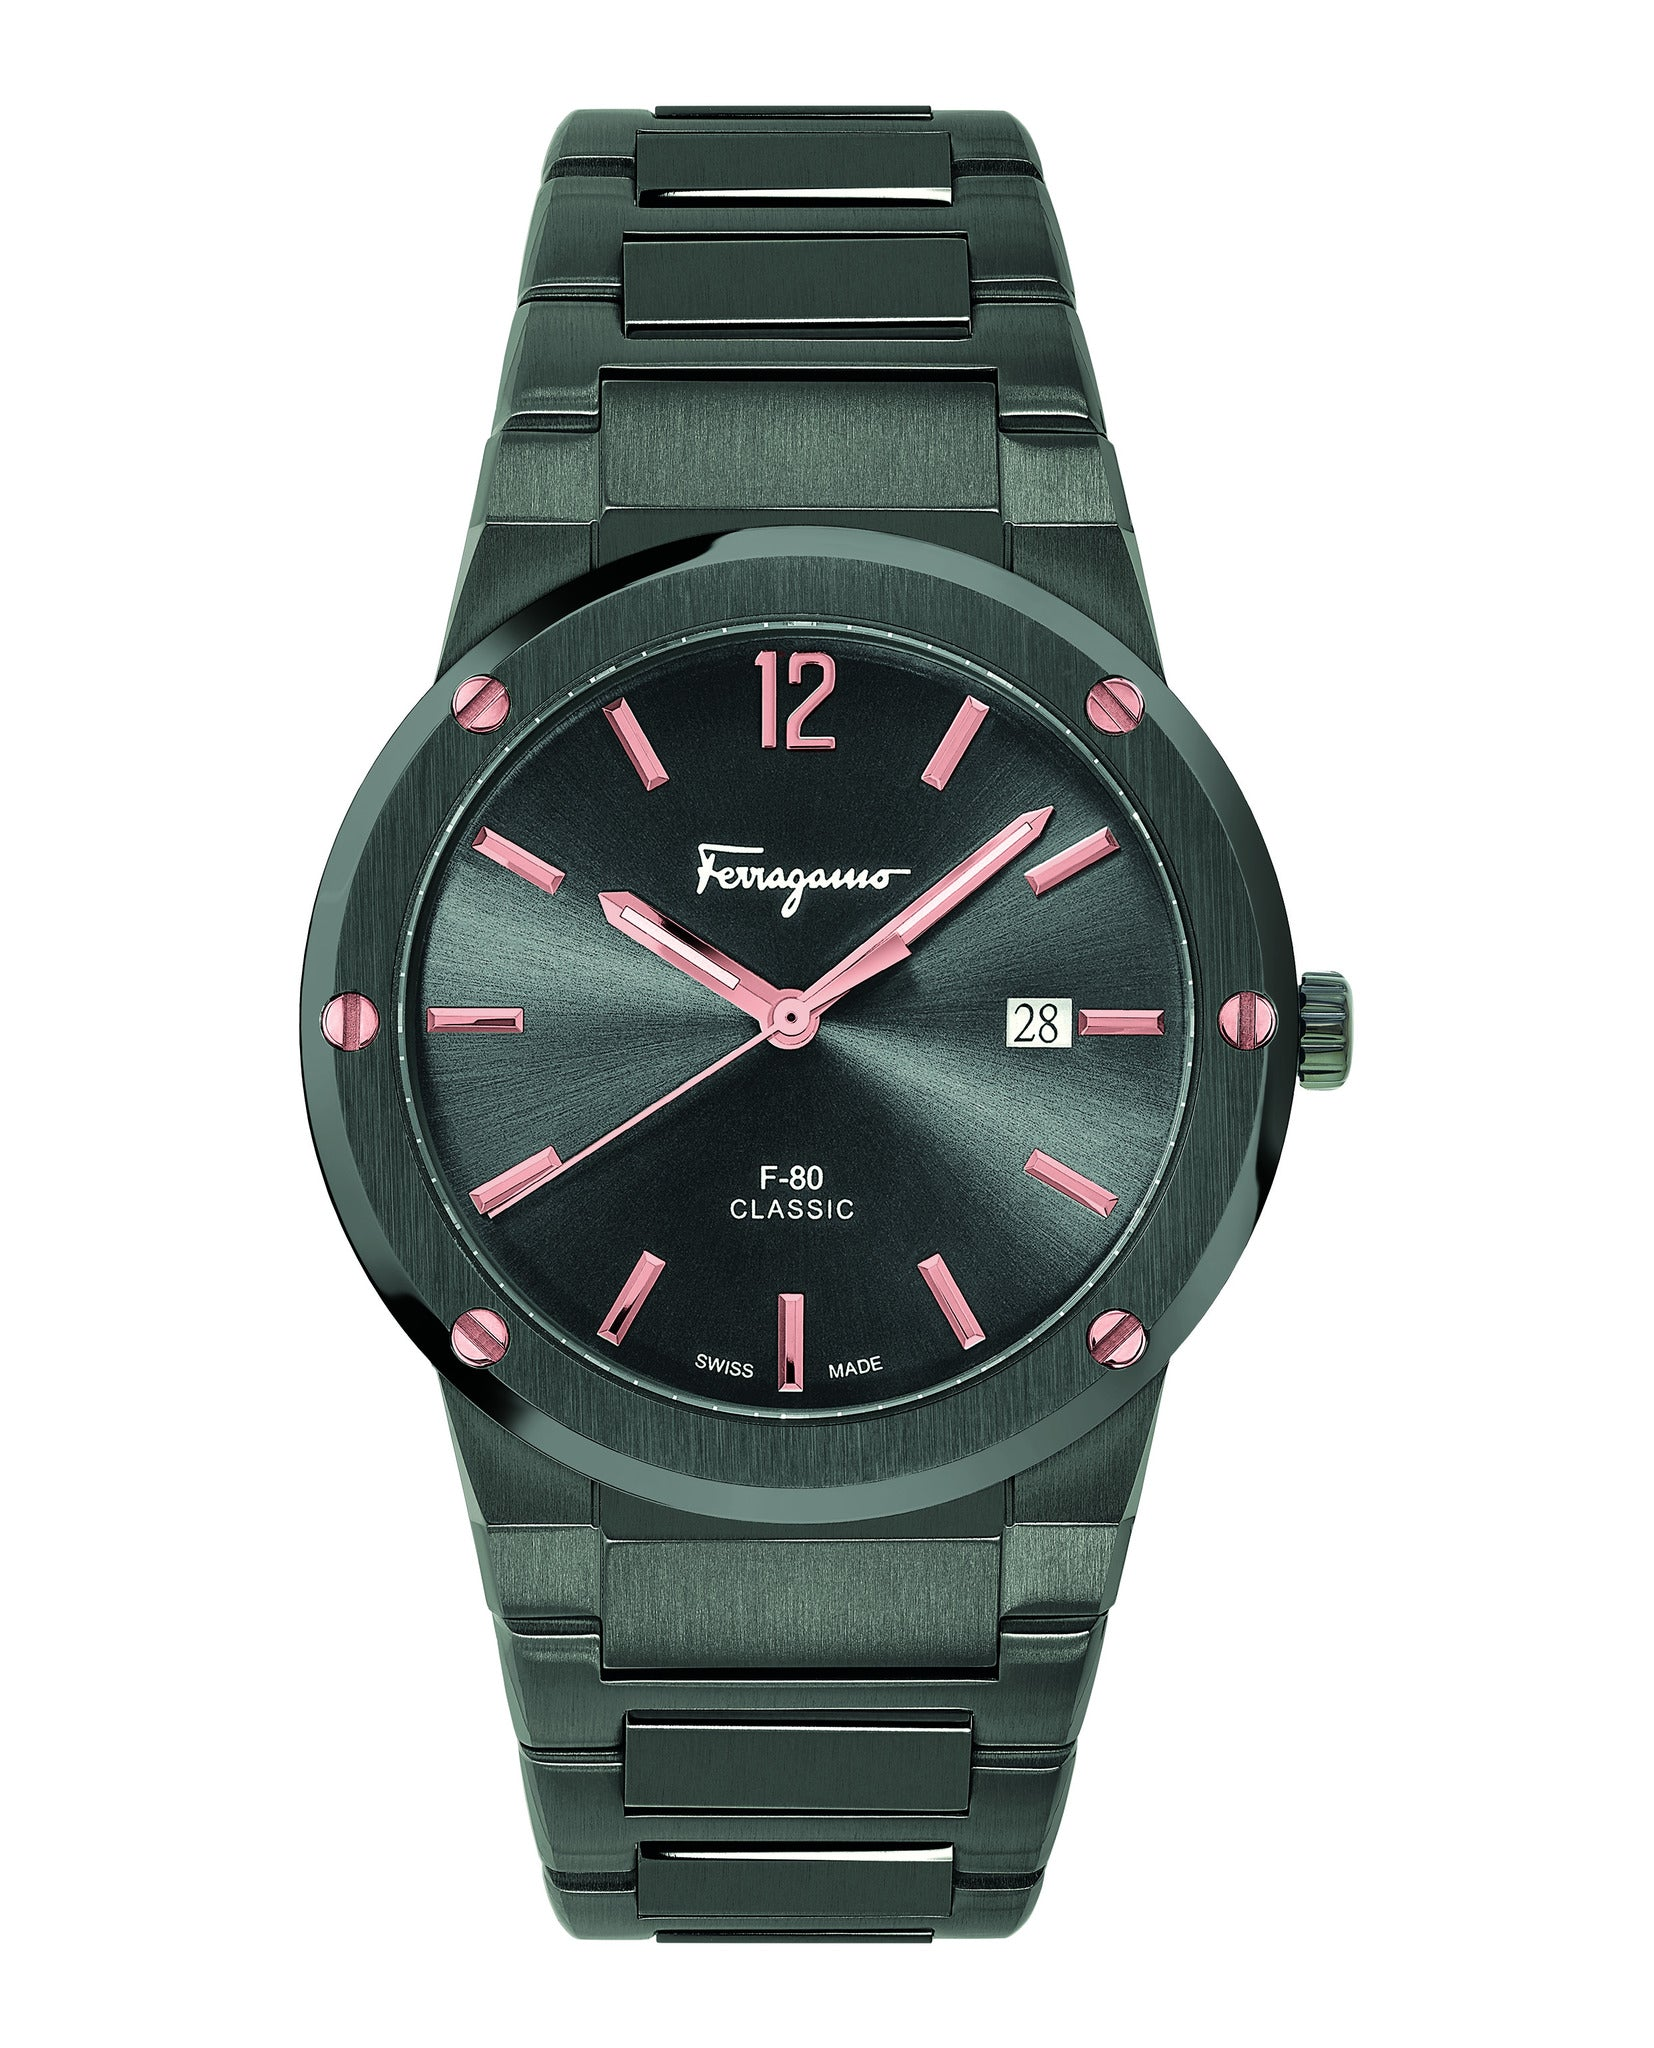 Salvatore Ferragamo F-80 Watch